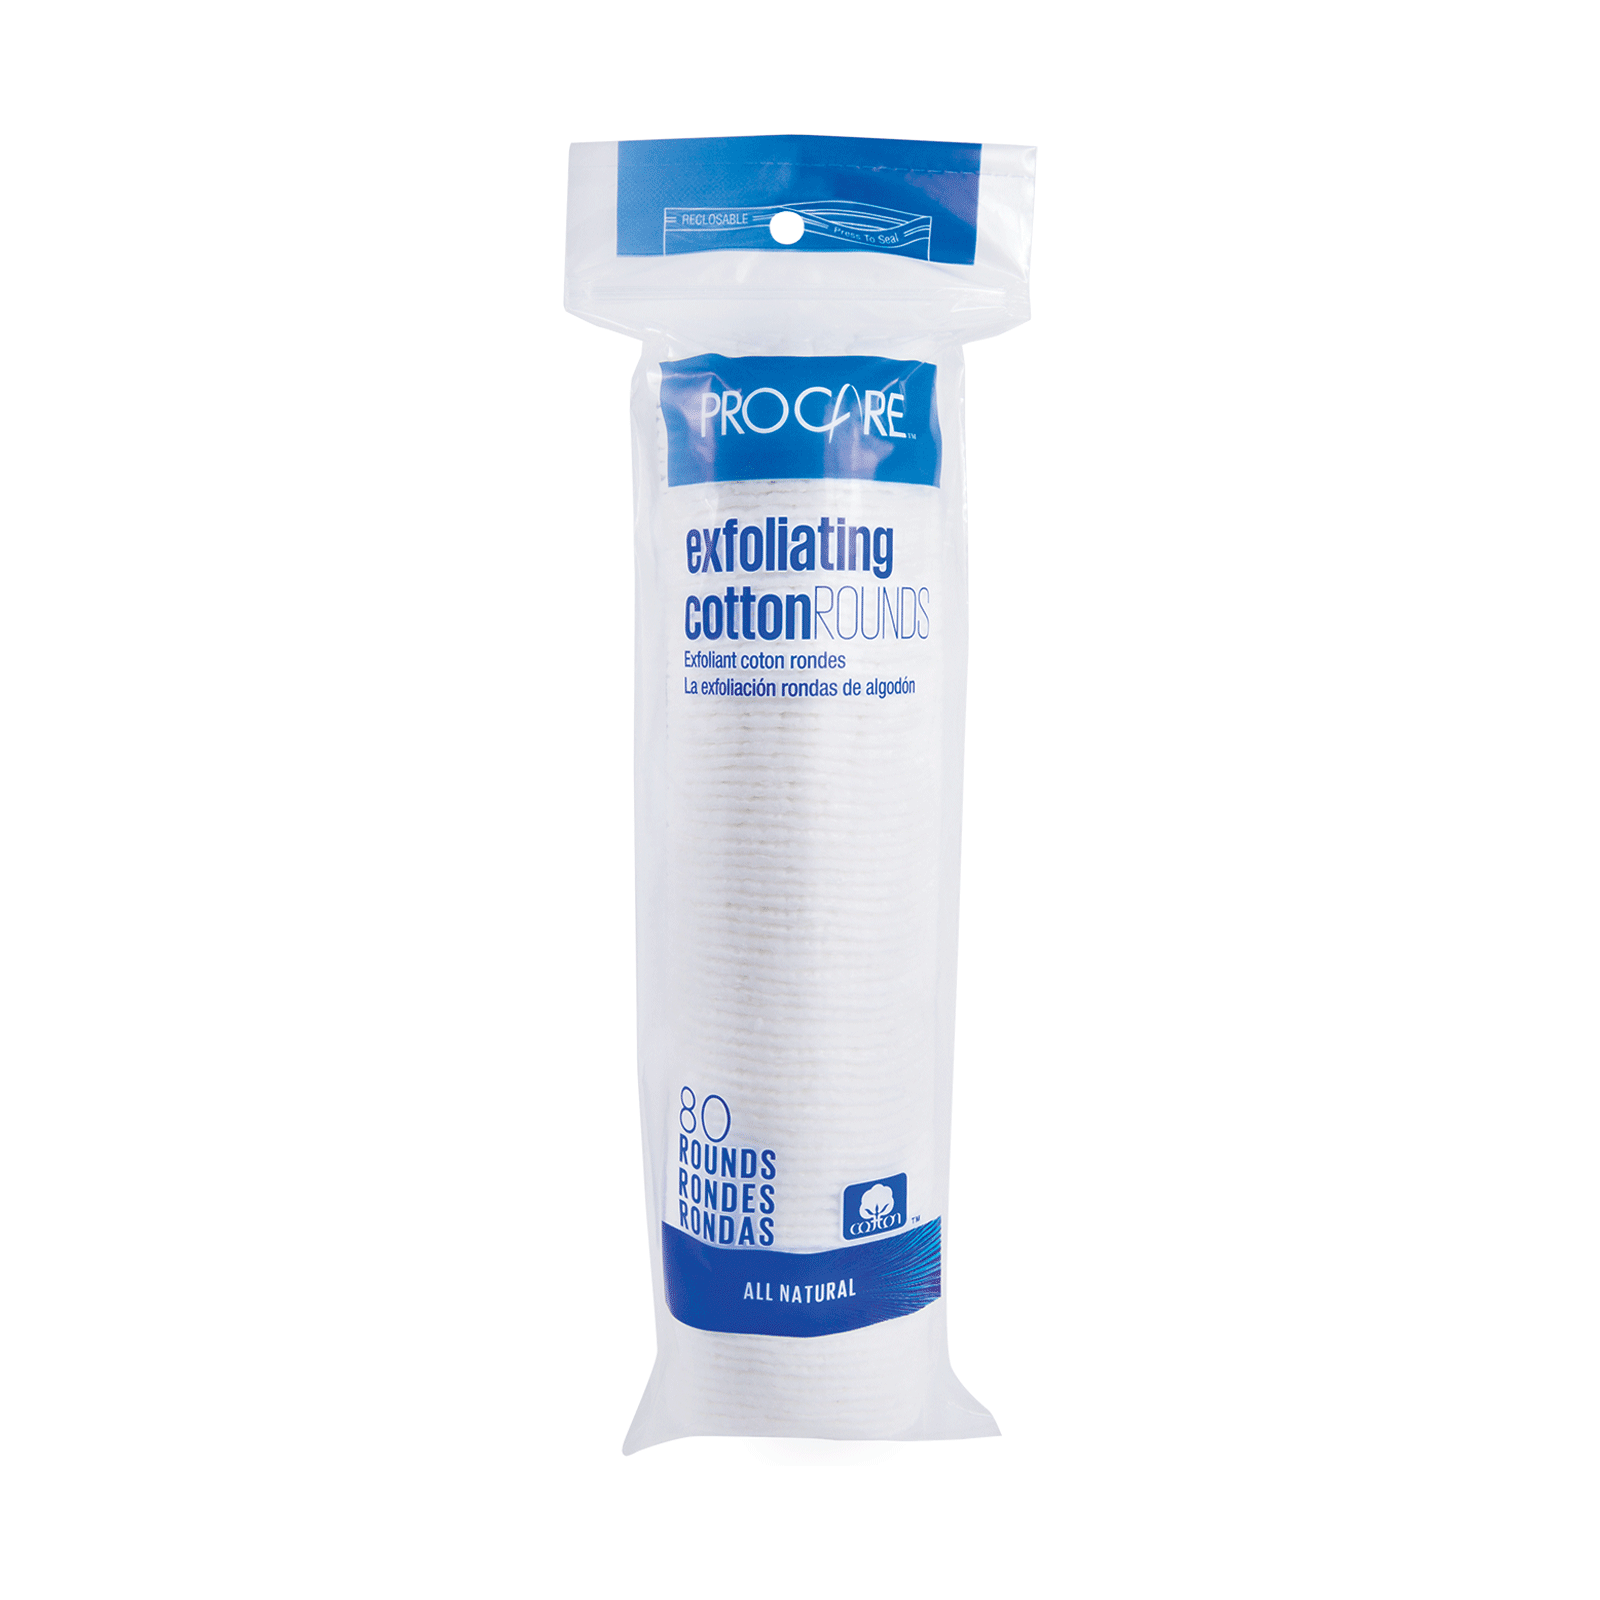 Premium Exfoliating Cotton Round - 80 Count